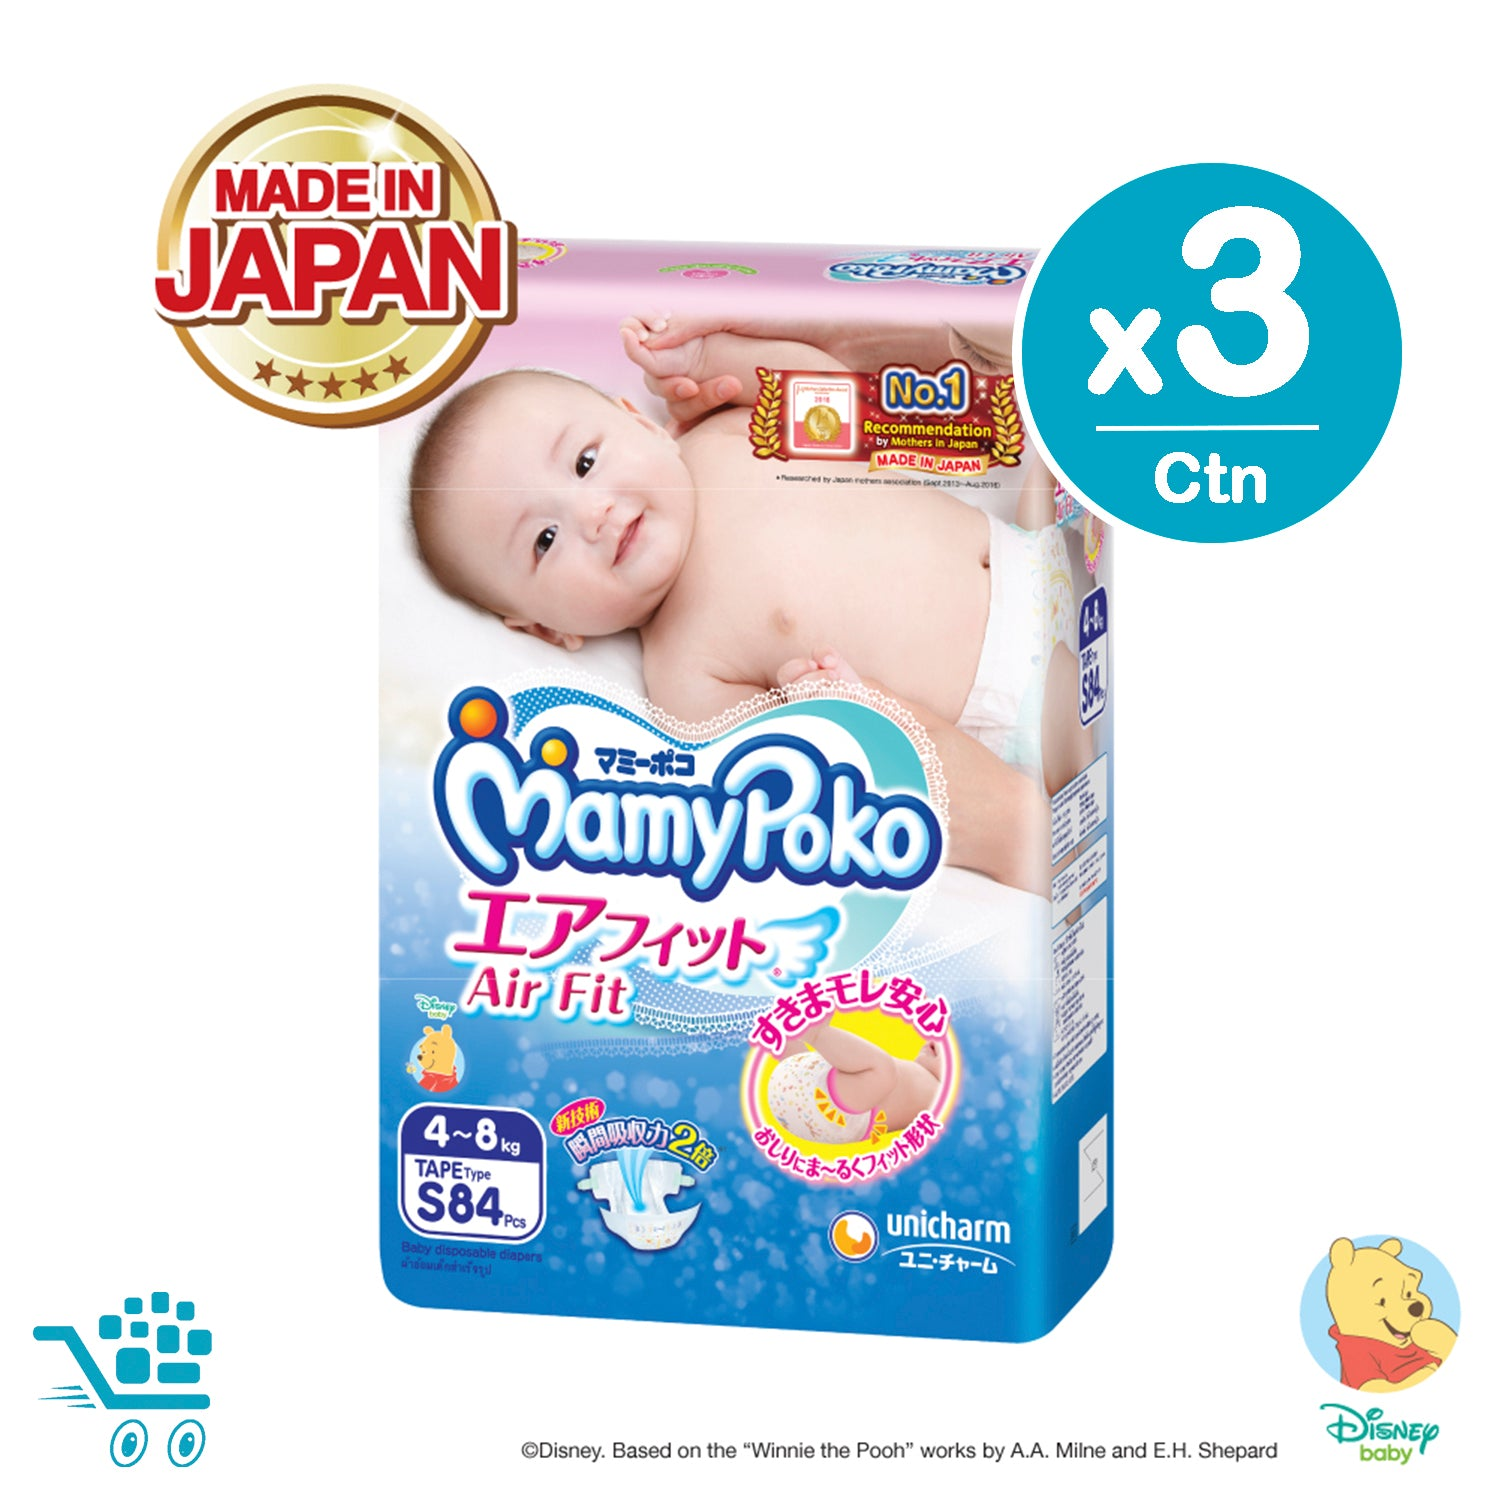 Mamypoko Air Fit Tape Type - S 84 pieces x 3 packs JPQ